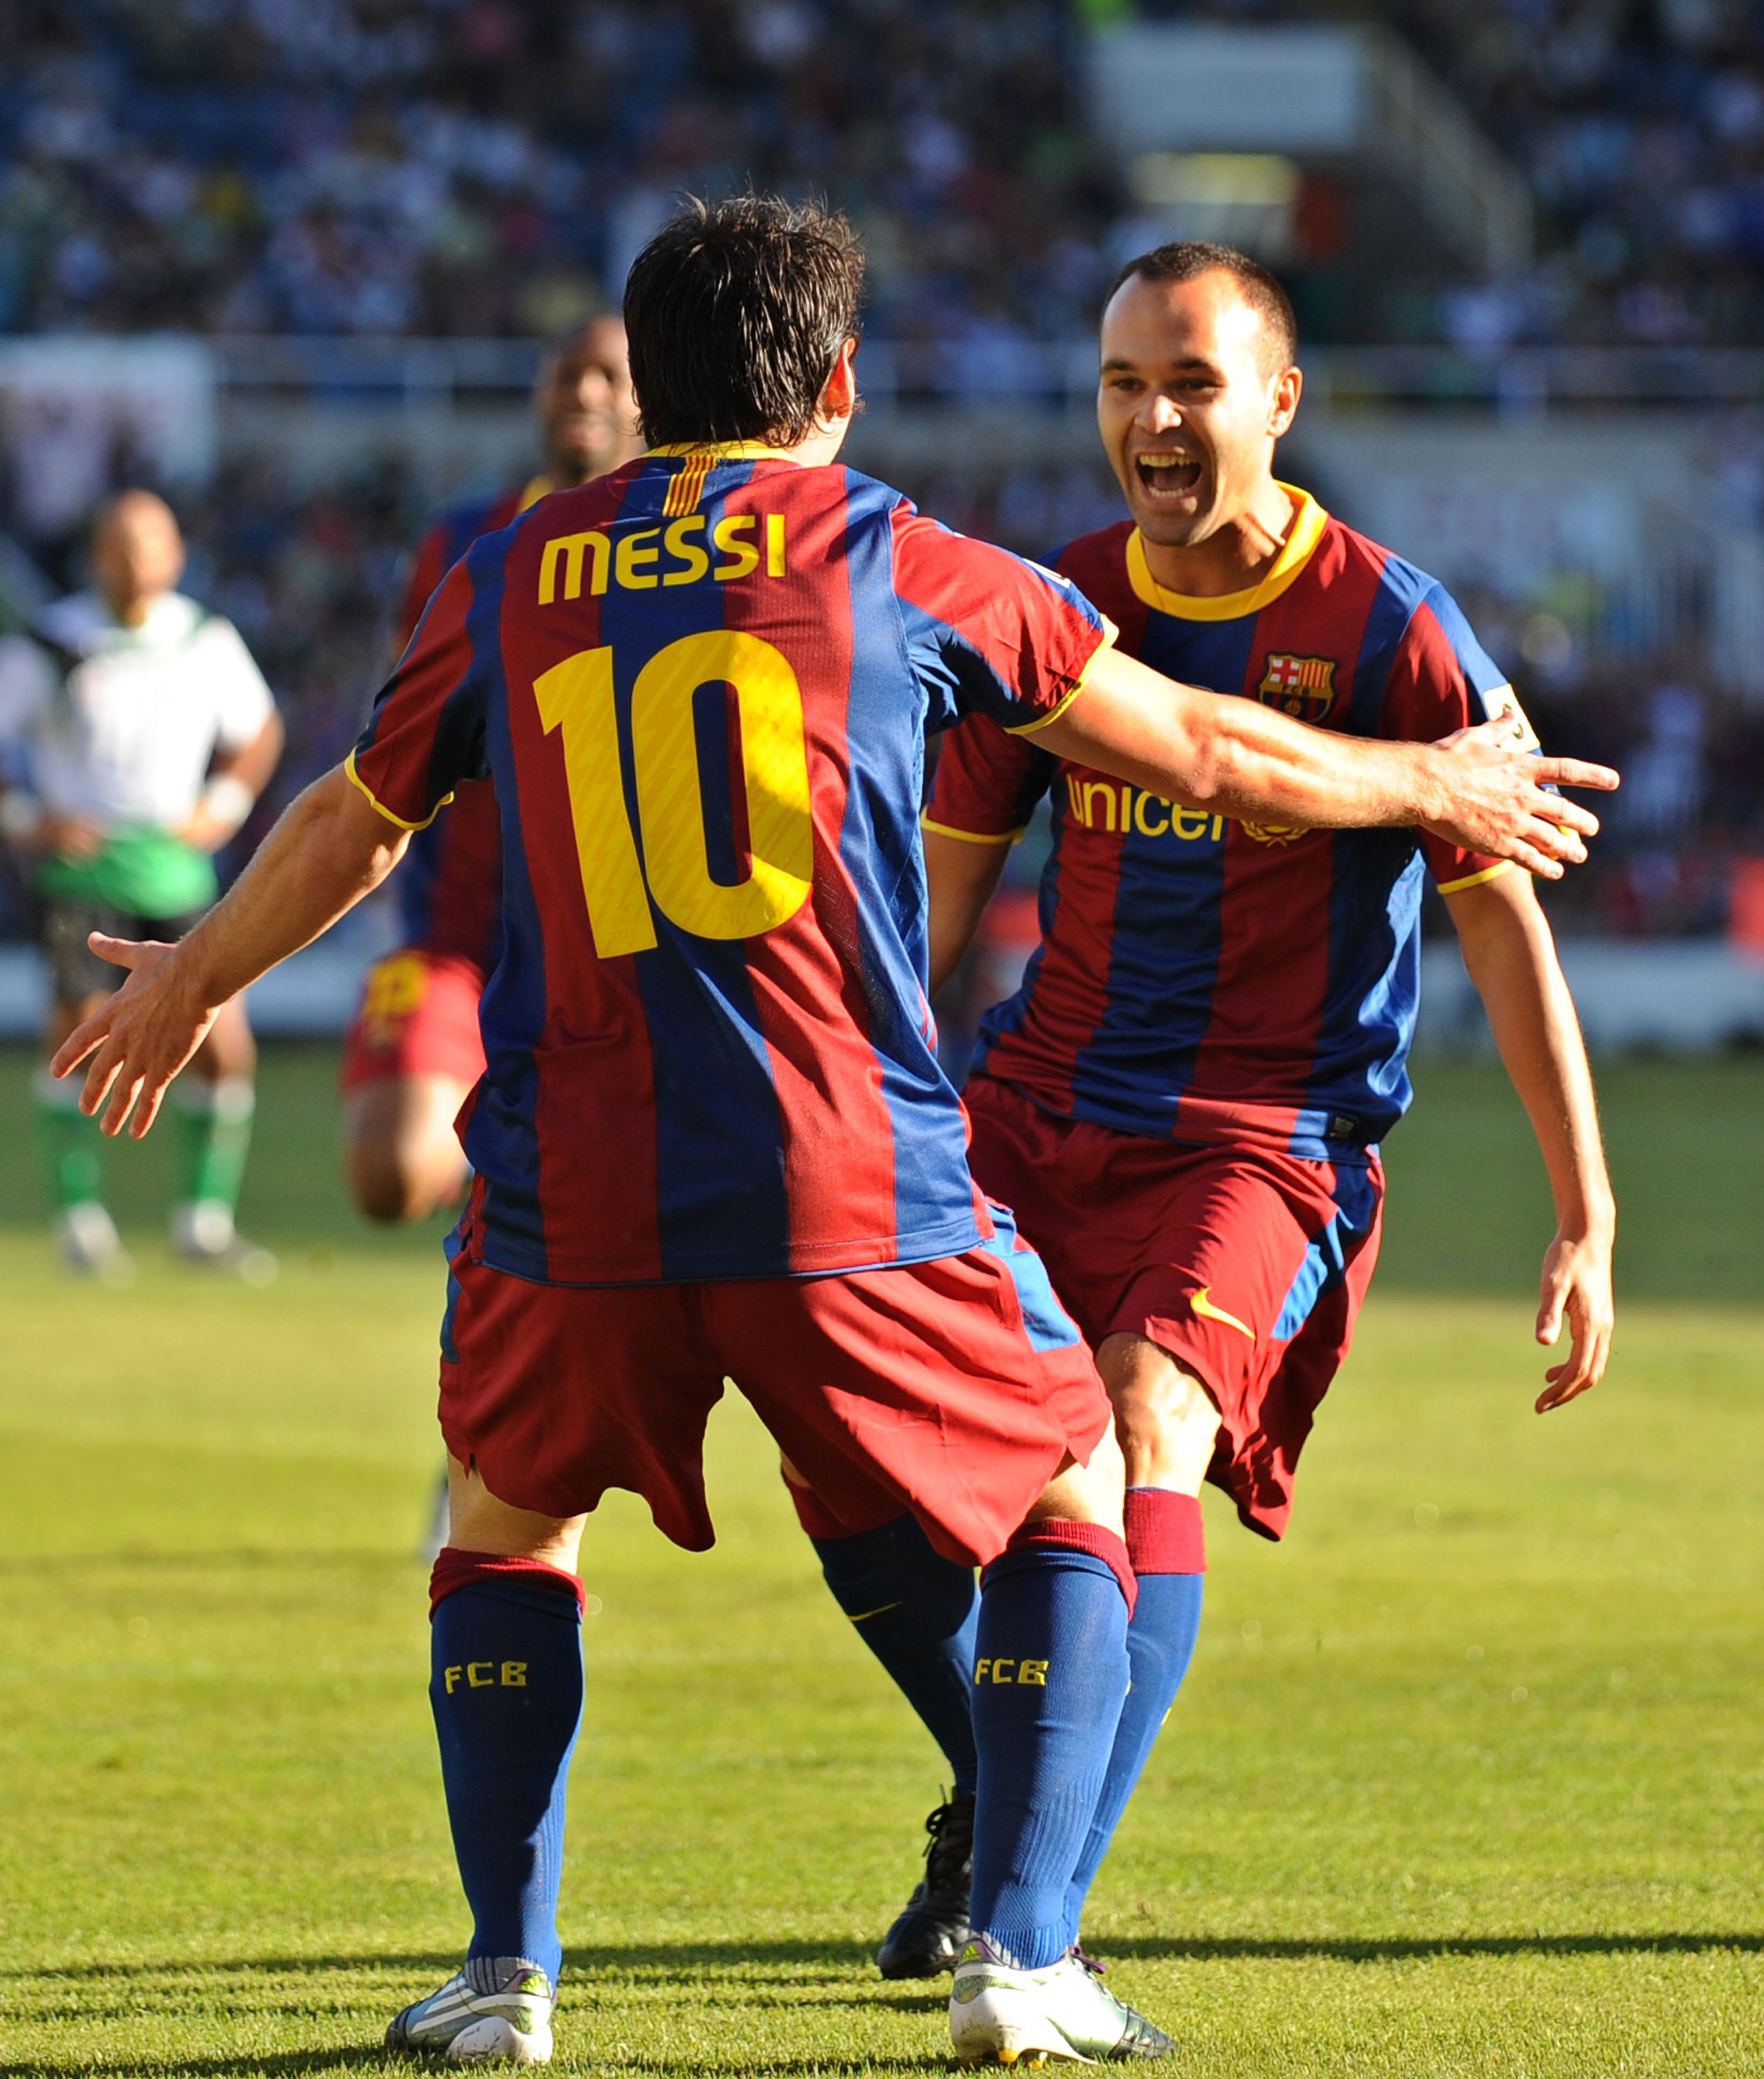 SANTANDER, SPAIN - AUGUST 29:  Leo Messi of Barcelona celebrates with Andres Iniesta (R) after scoring Barcelona's first goal during the La Liga match between Racing Santander and Barcelona at El Sardinero stadium on August 29, 2010 in Santander, Spain.